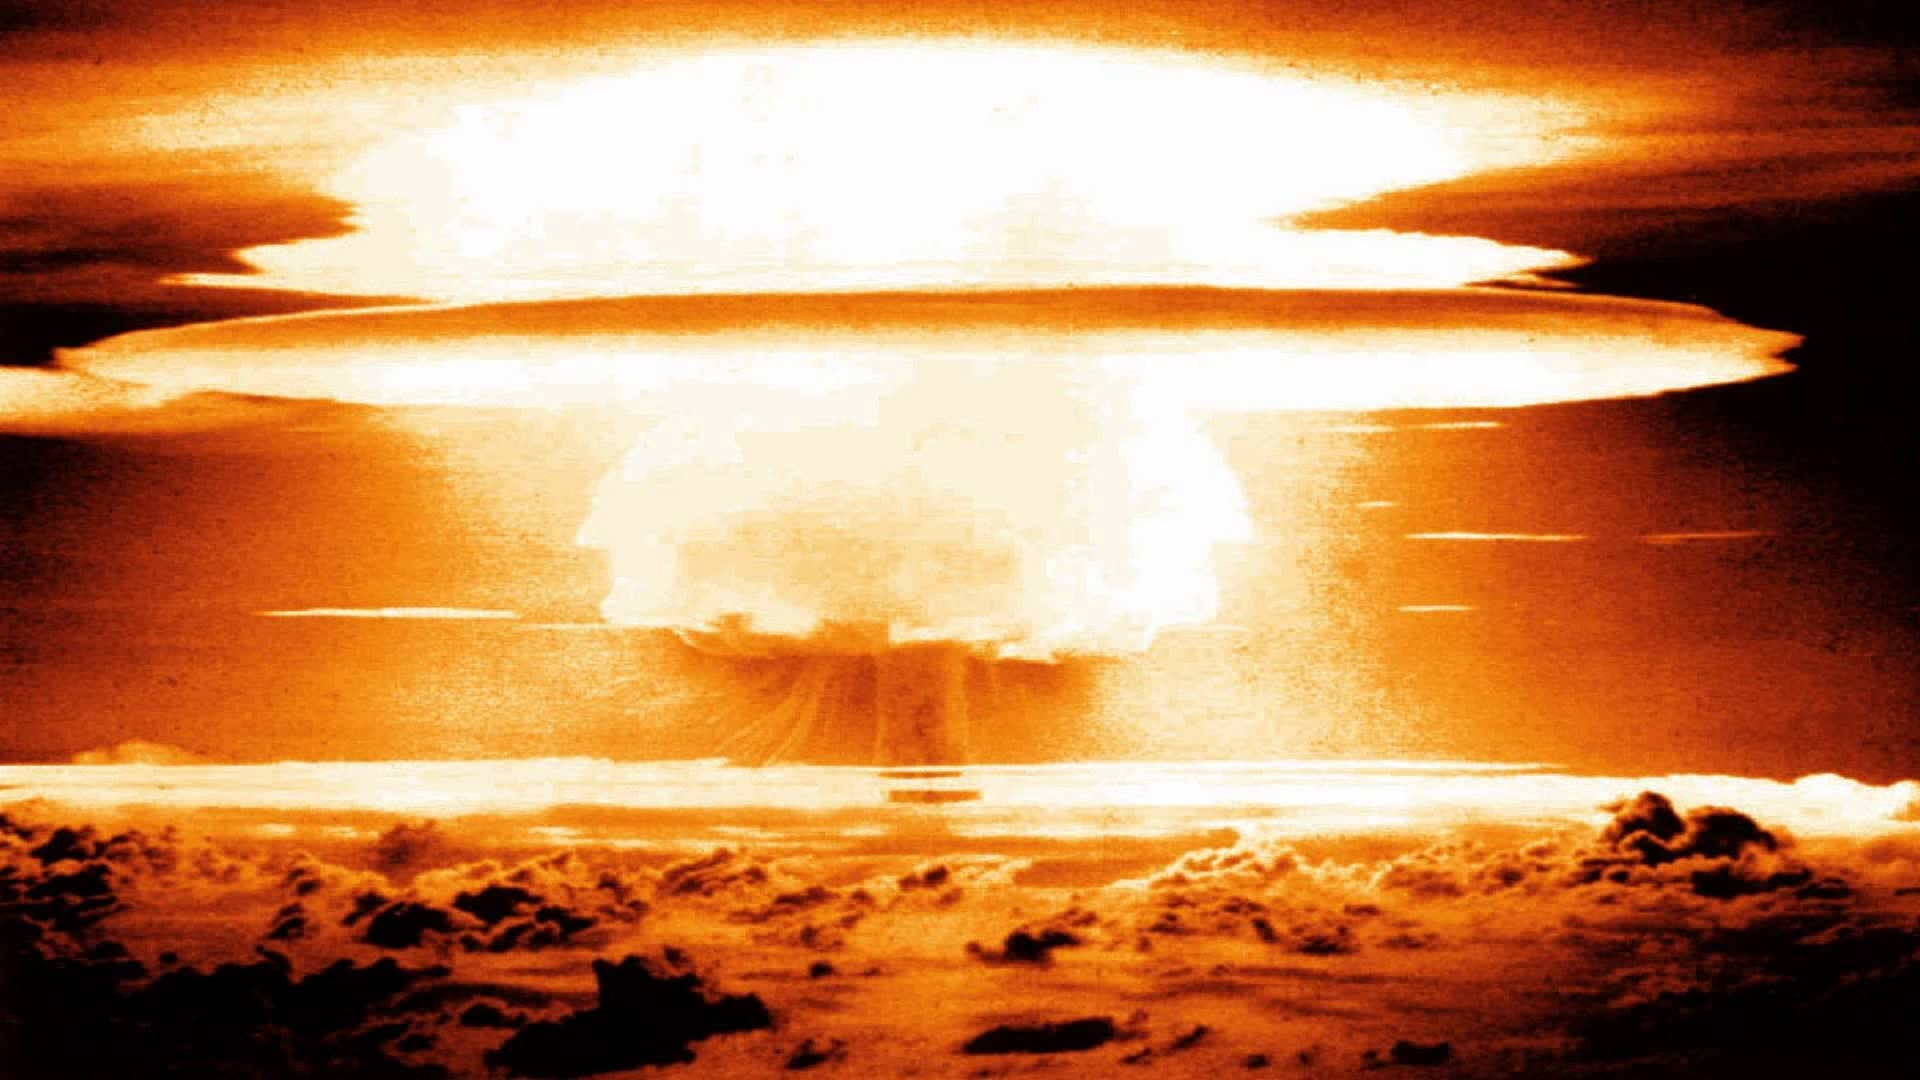 nuclear explosion sound effect - youtube